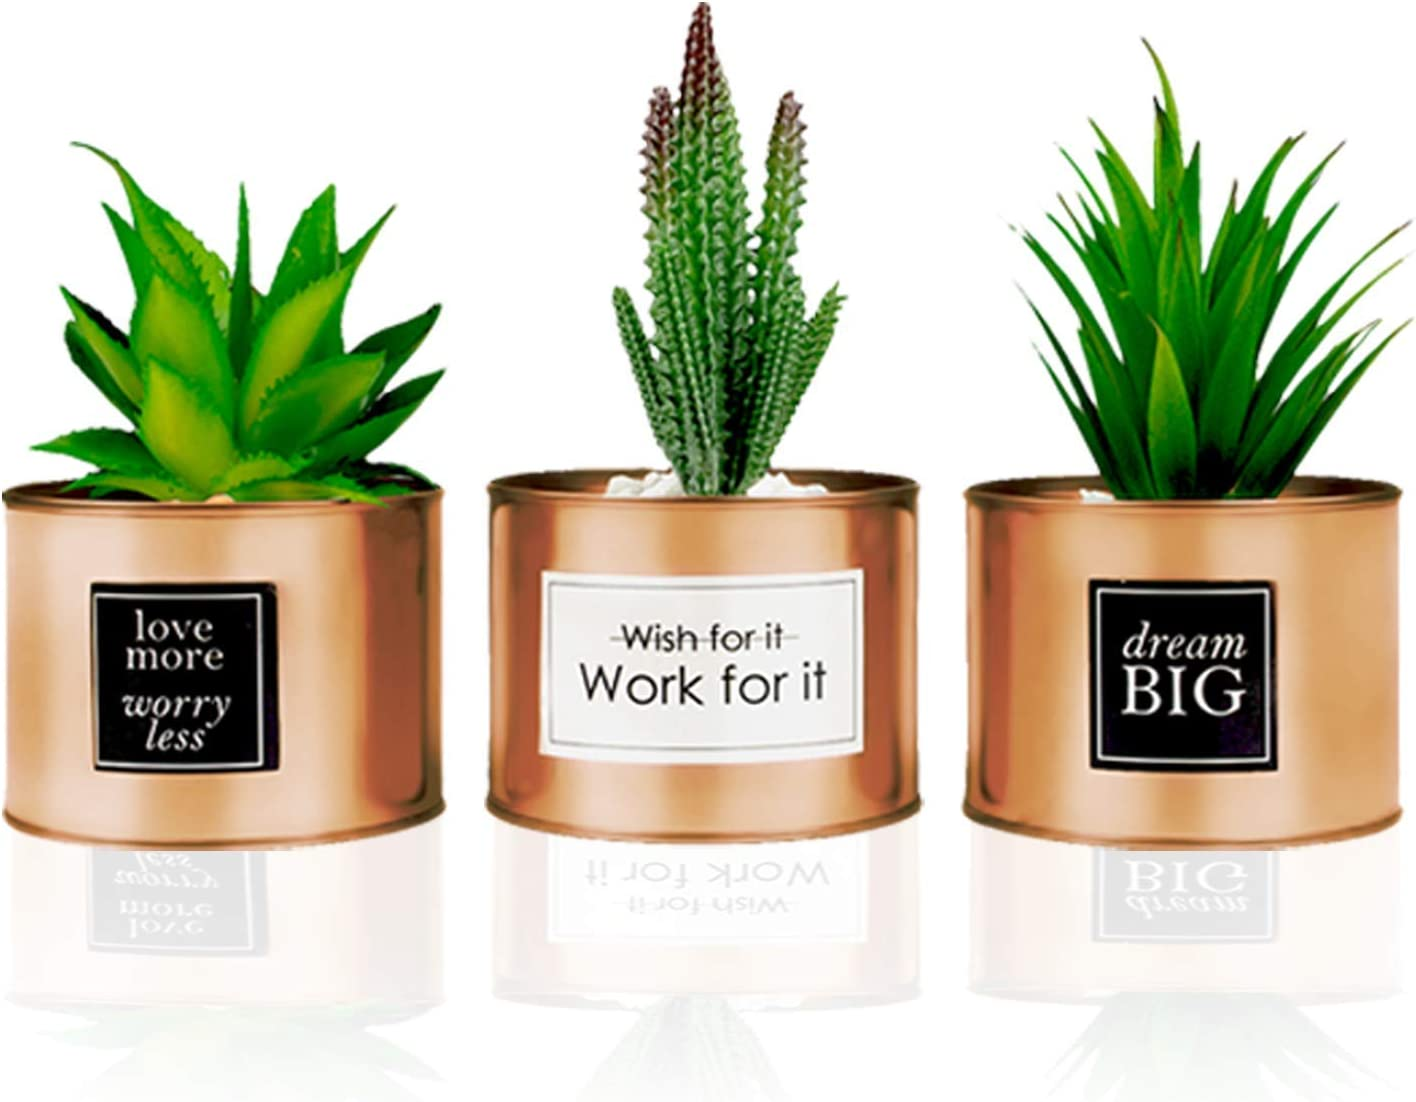 Office Decor for Women Desk - Desk Decor for Women, Bedroom Decor for Women - Desk Decorations for Women Office - Bookshelf Decor, Boho Home Decor, Fake Cactus Office Plant Decor for Cubicle Decor